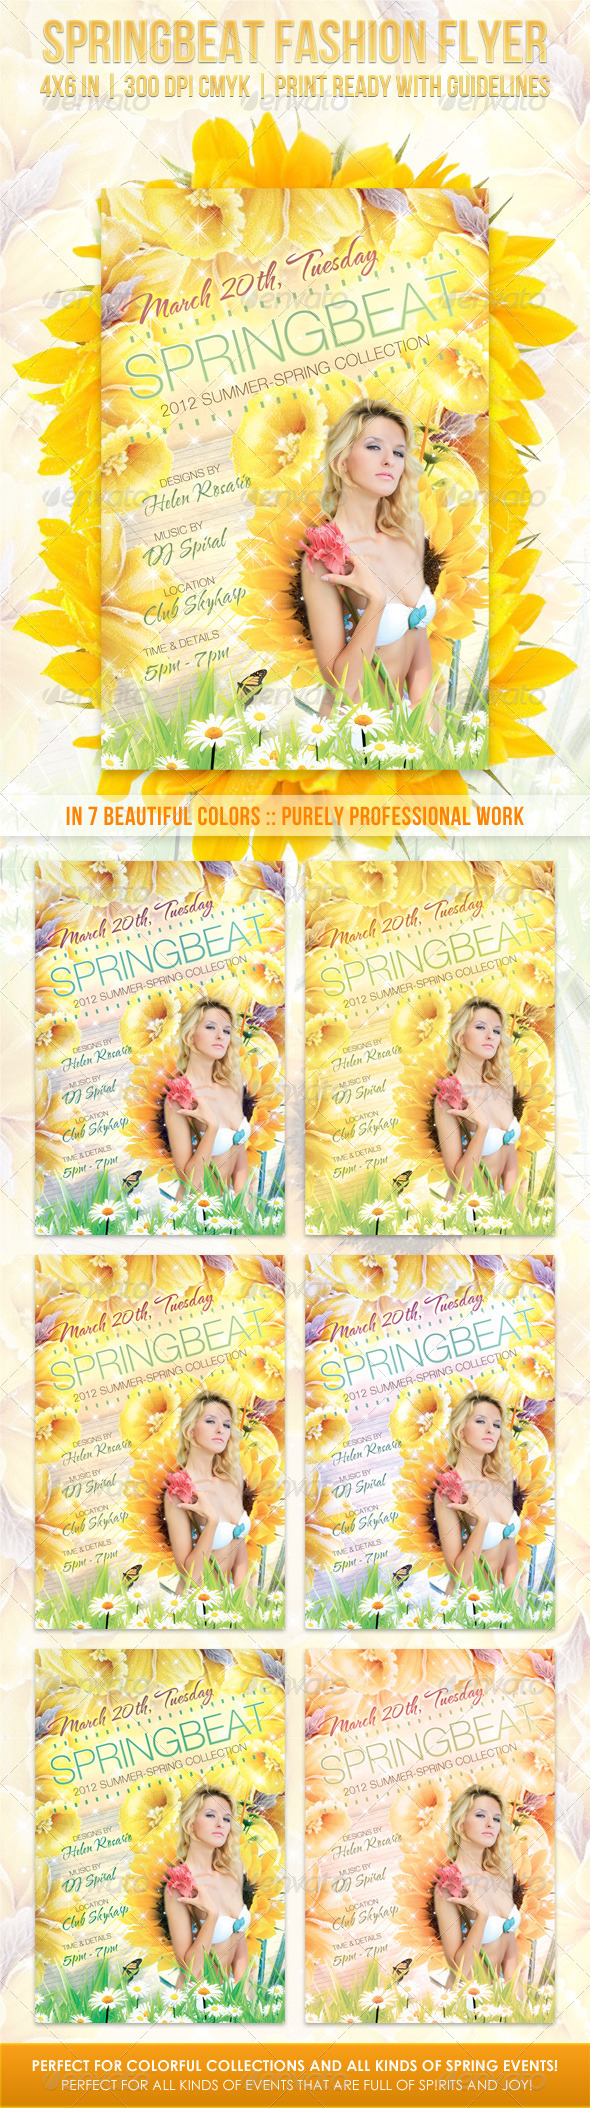 GraphicRiver Springbeat Spring Fashion Flyer 1722738